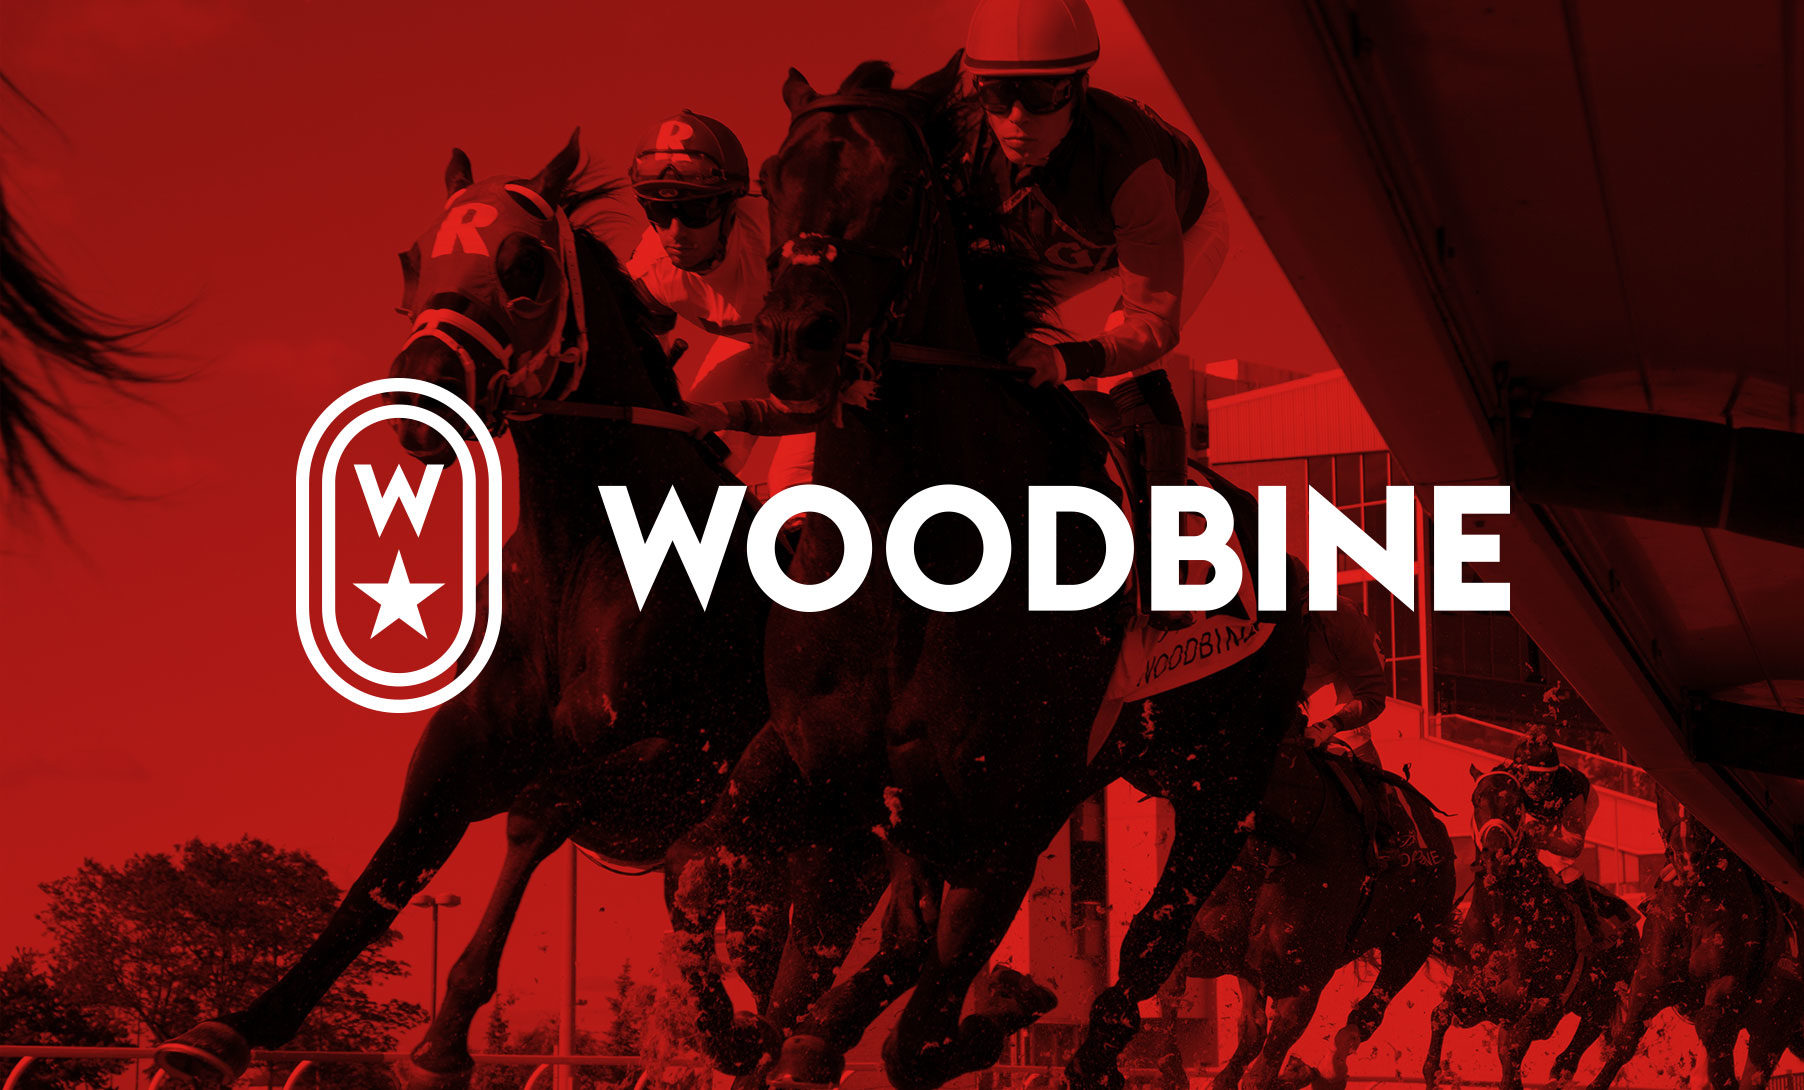 Christine Magee Appointed Chair of Woodbine Entertainment's Board of Directors